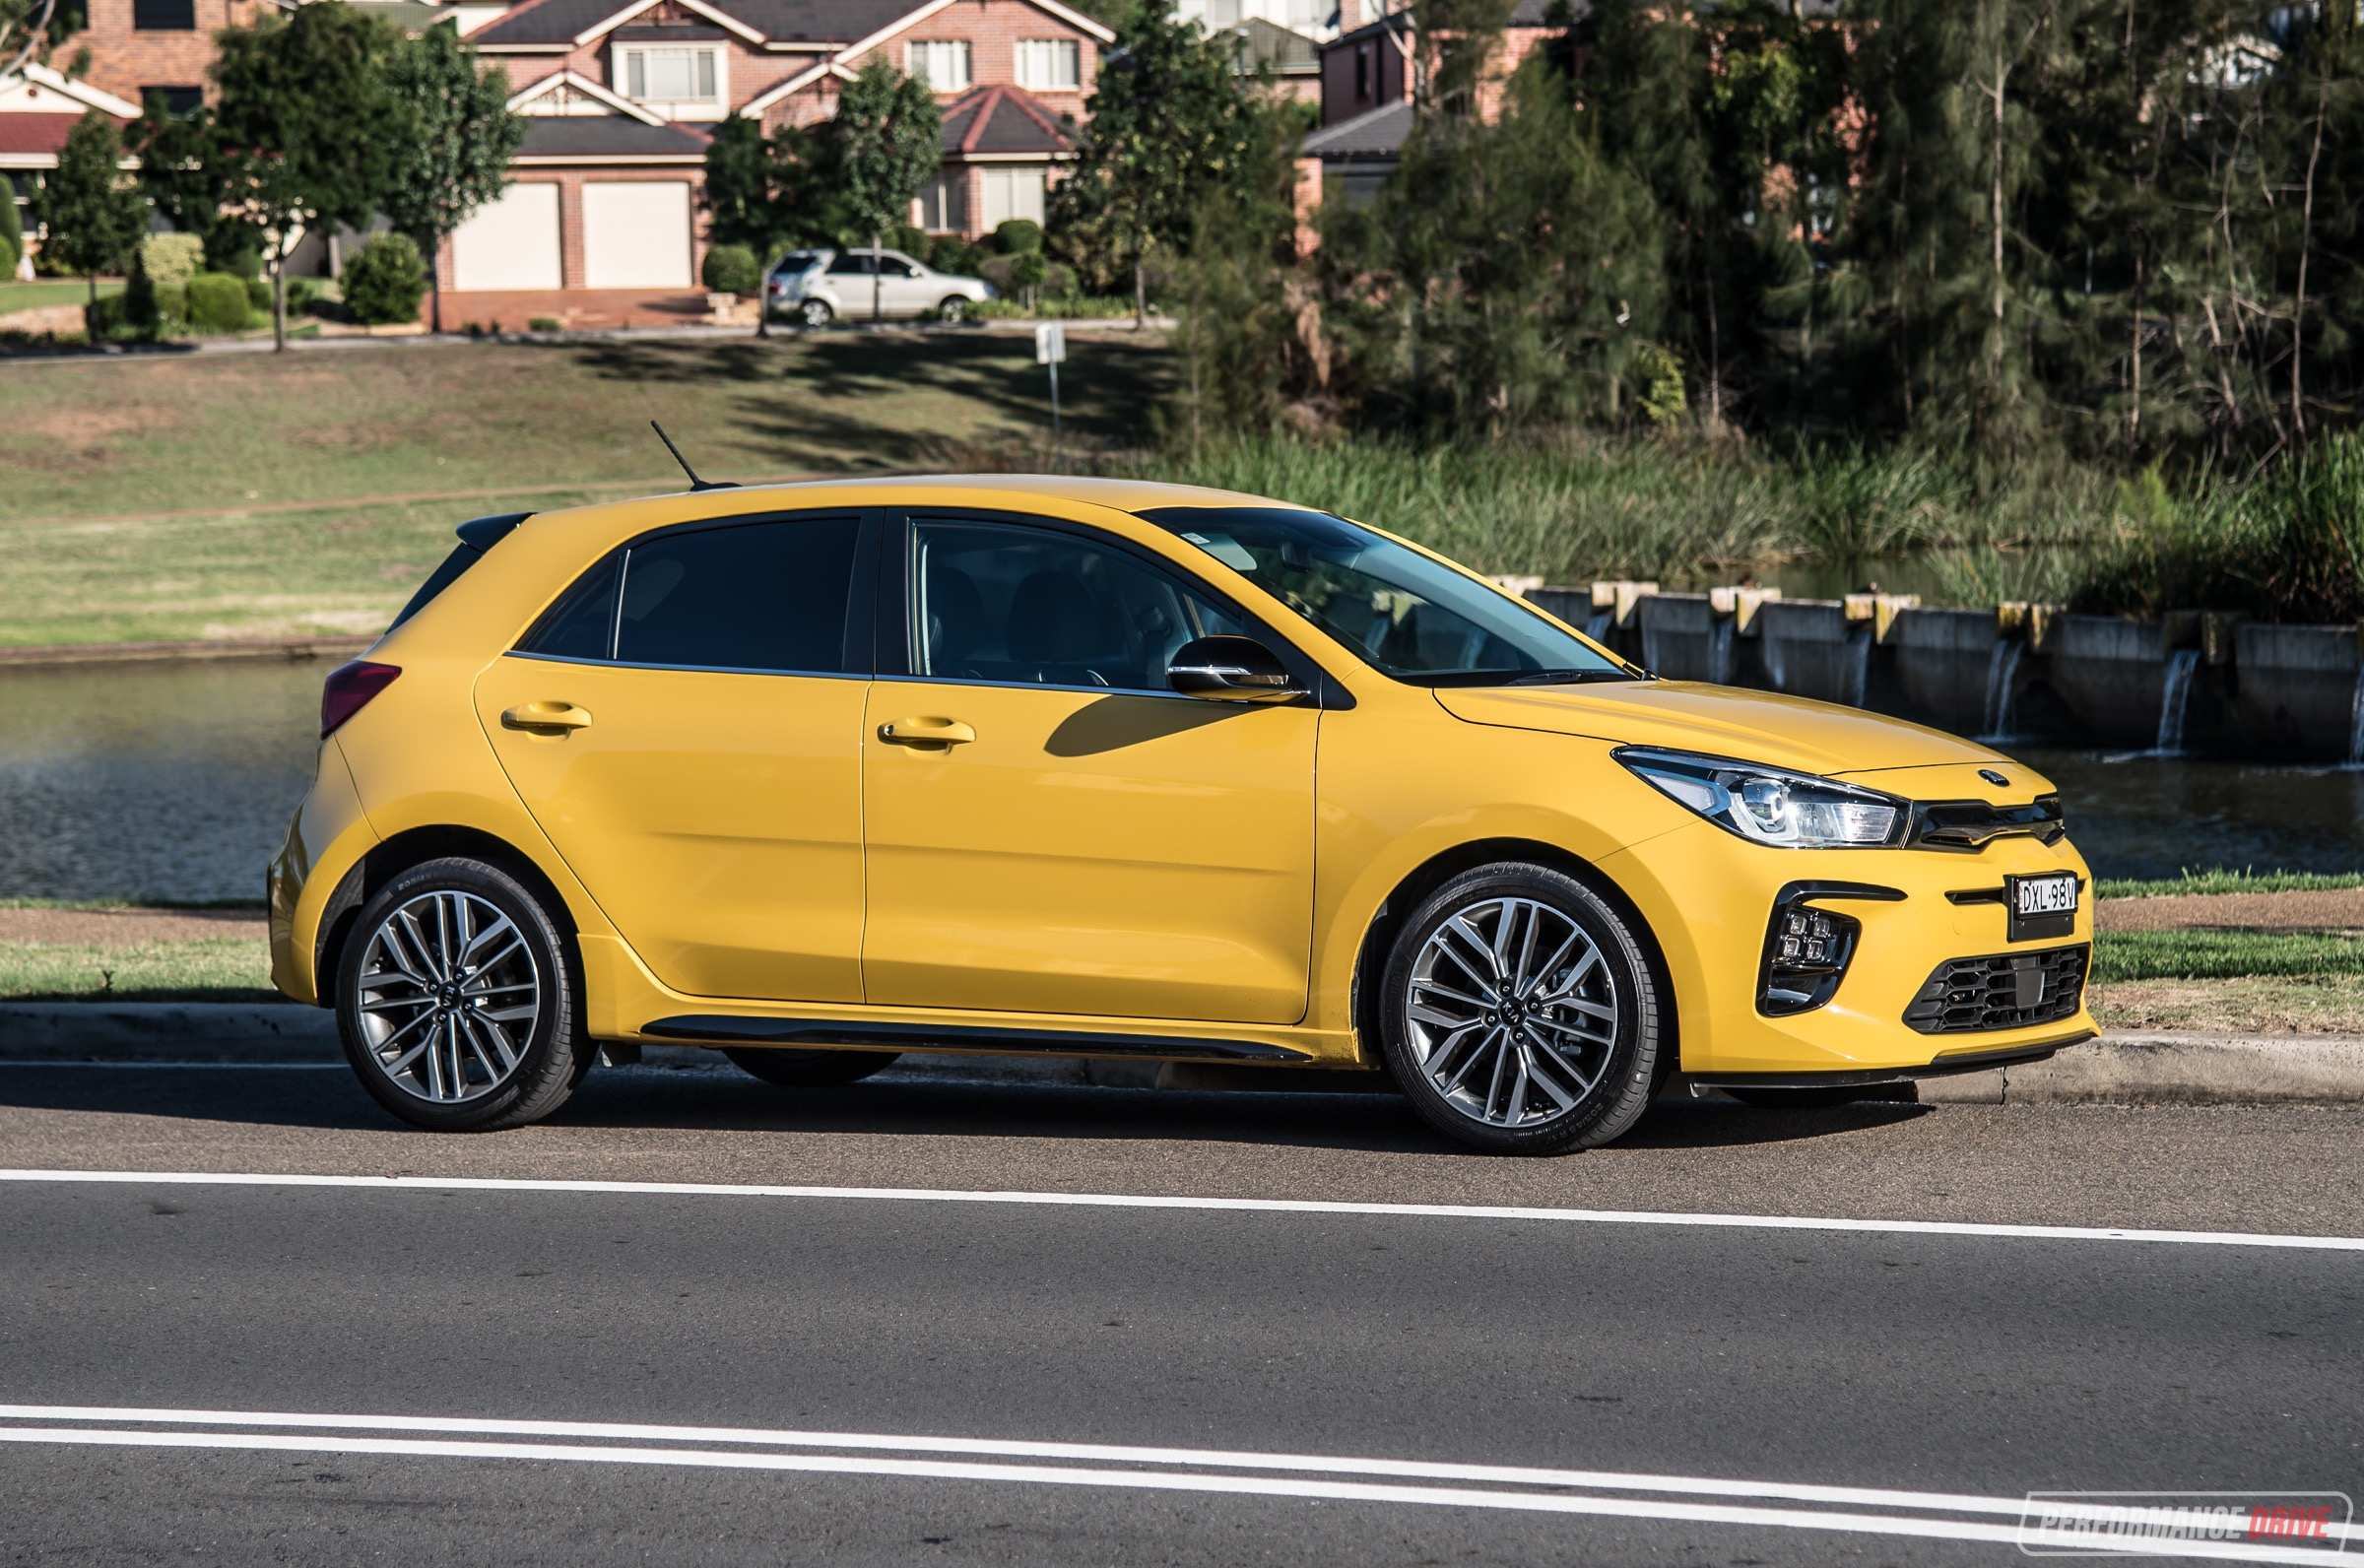 60 New Kia Rio 2019 Review Overview